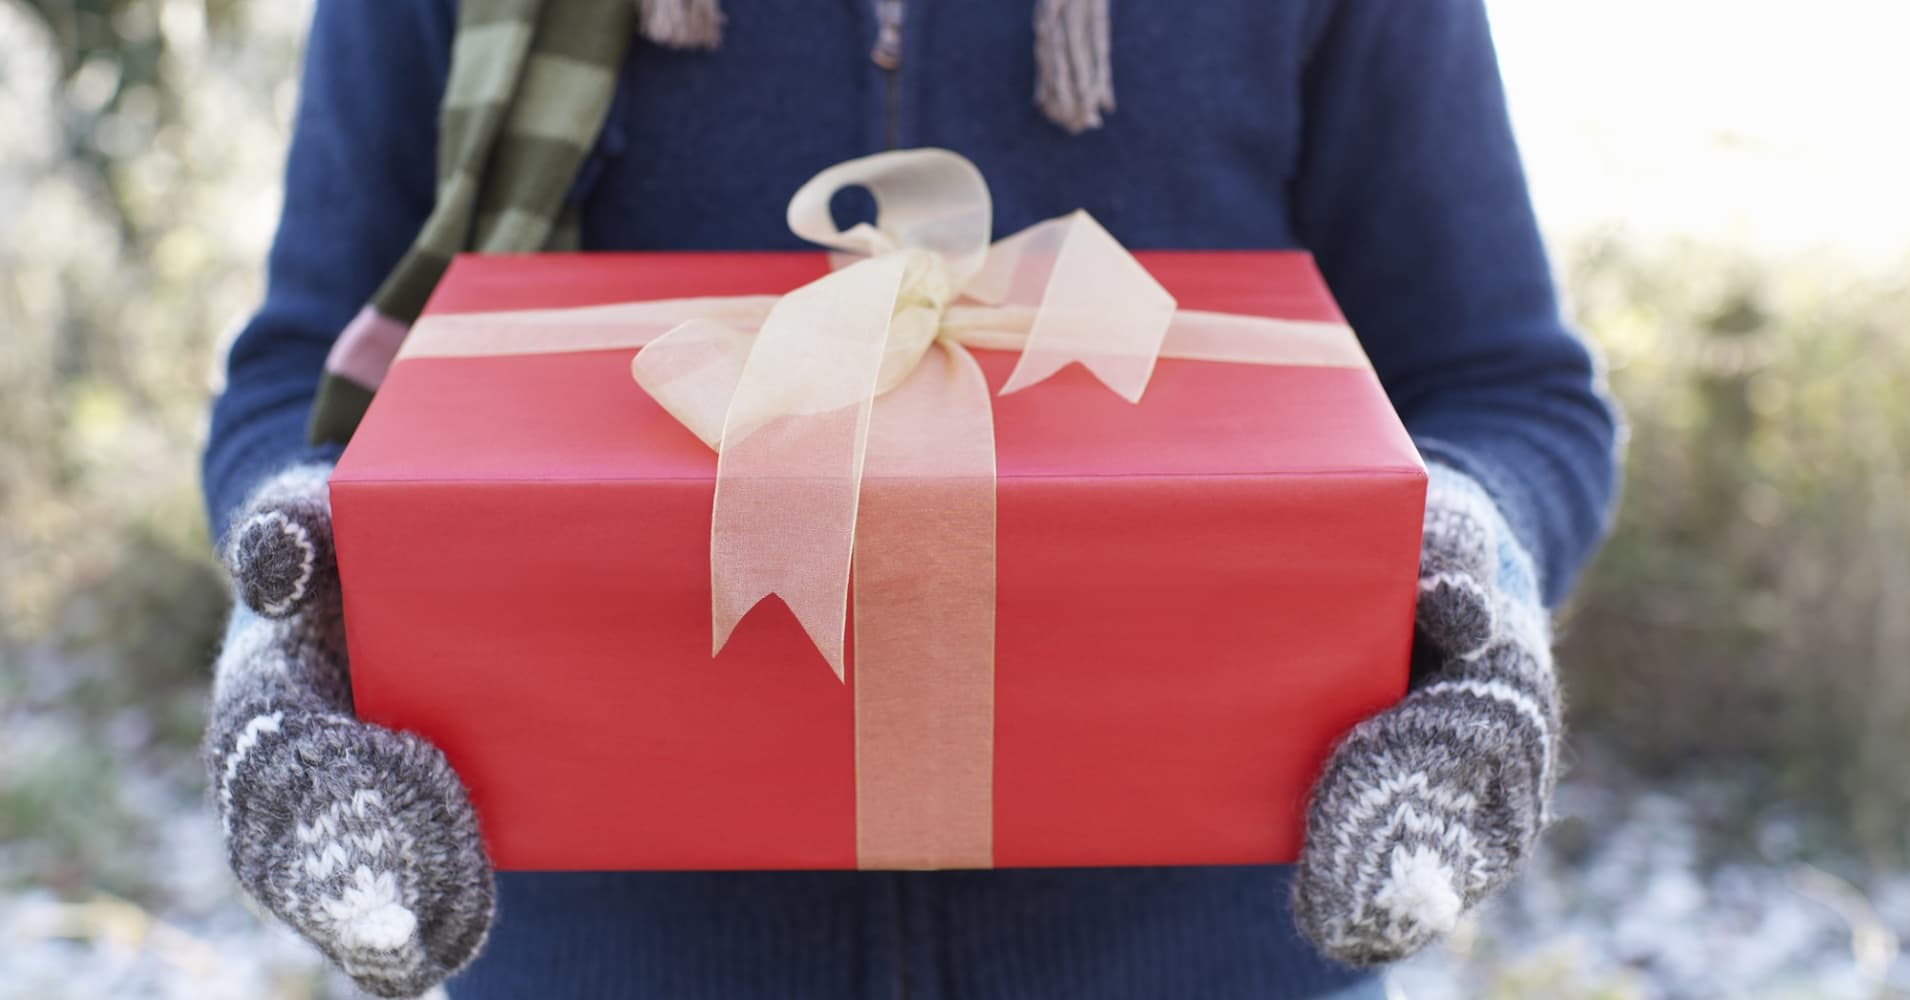 7 great holiday gifts for self-improvement junkies